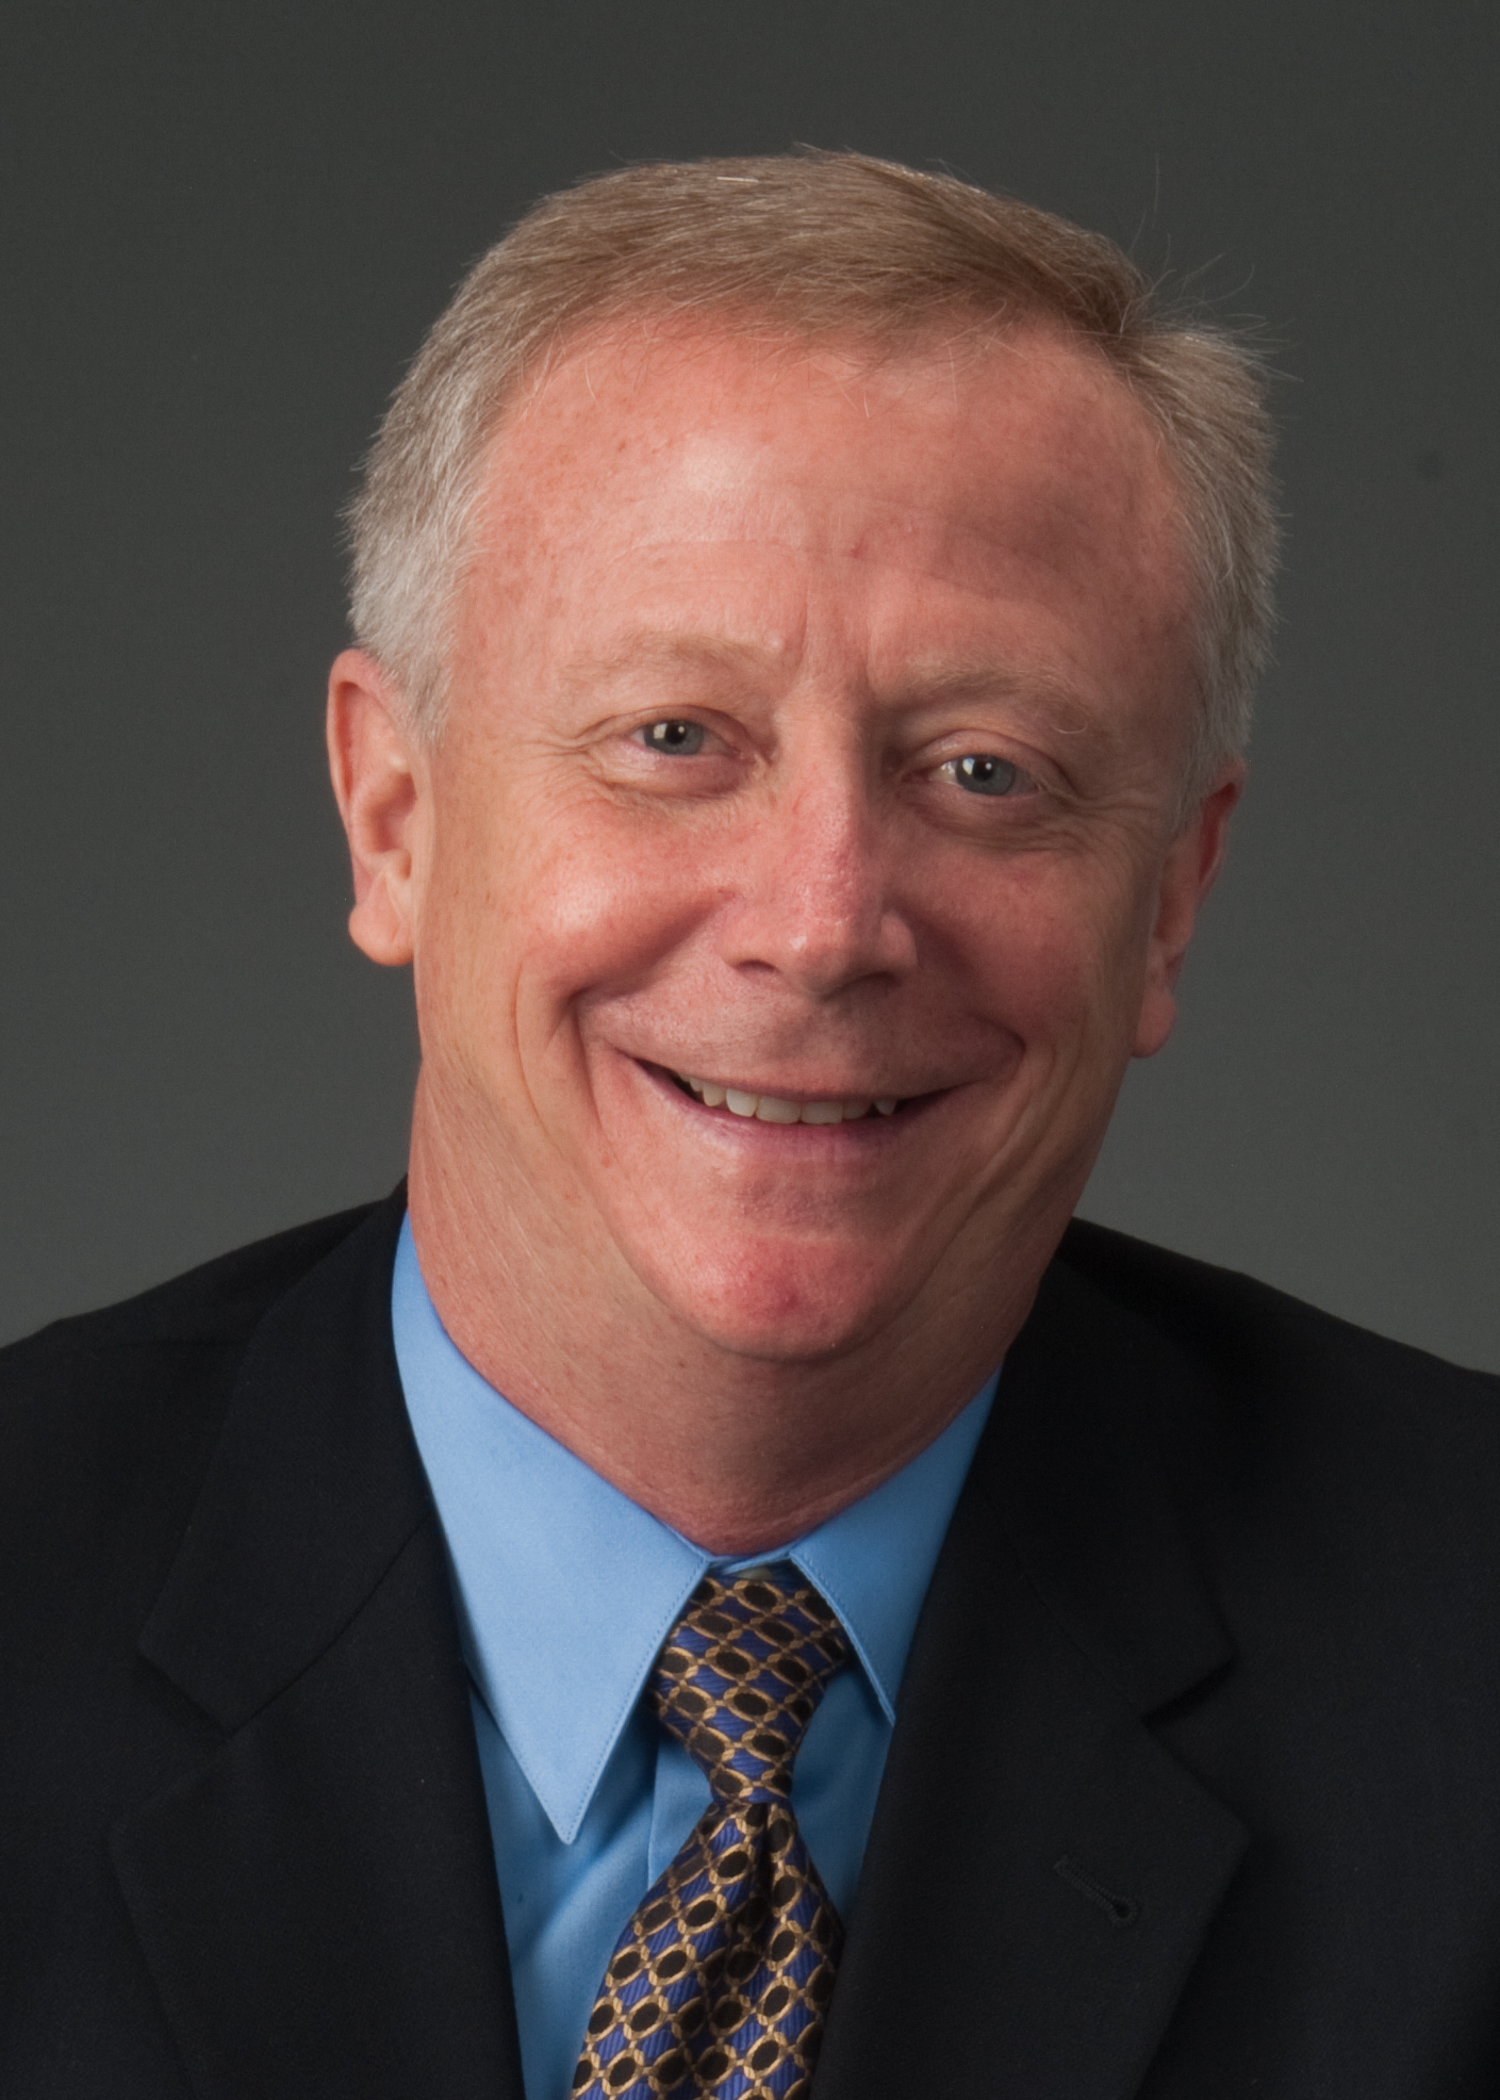 David Crist Named President of Brother Mobile Solutions (Photo: Business Wire)